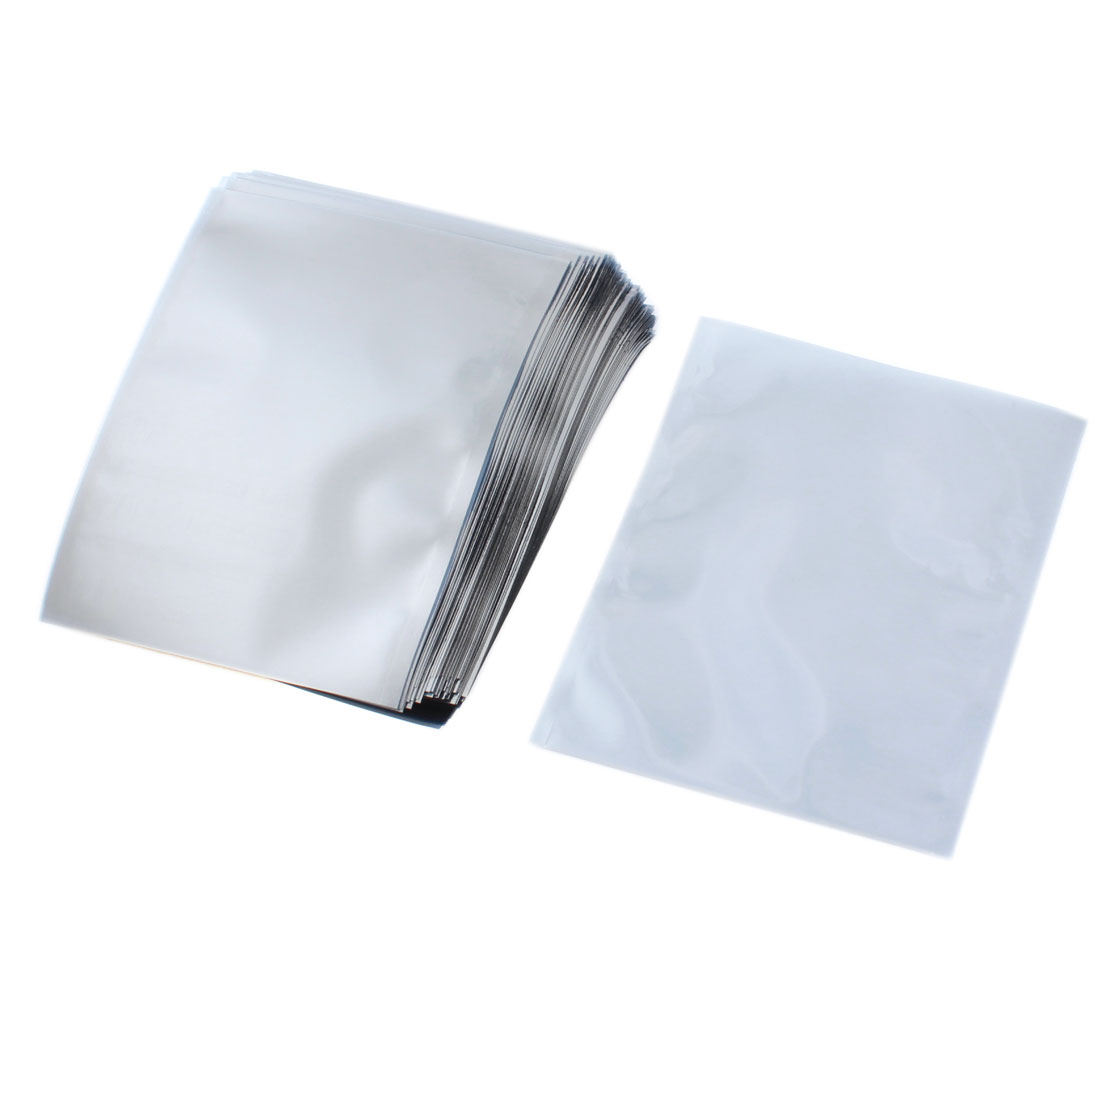 "100pcs 4 ""x 5"" ESD Anti-static Shielding Bags Packagings"